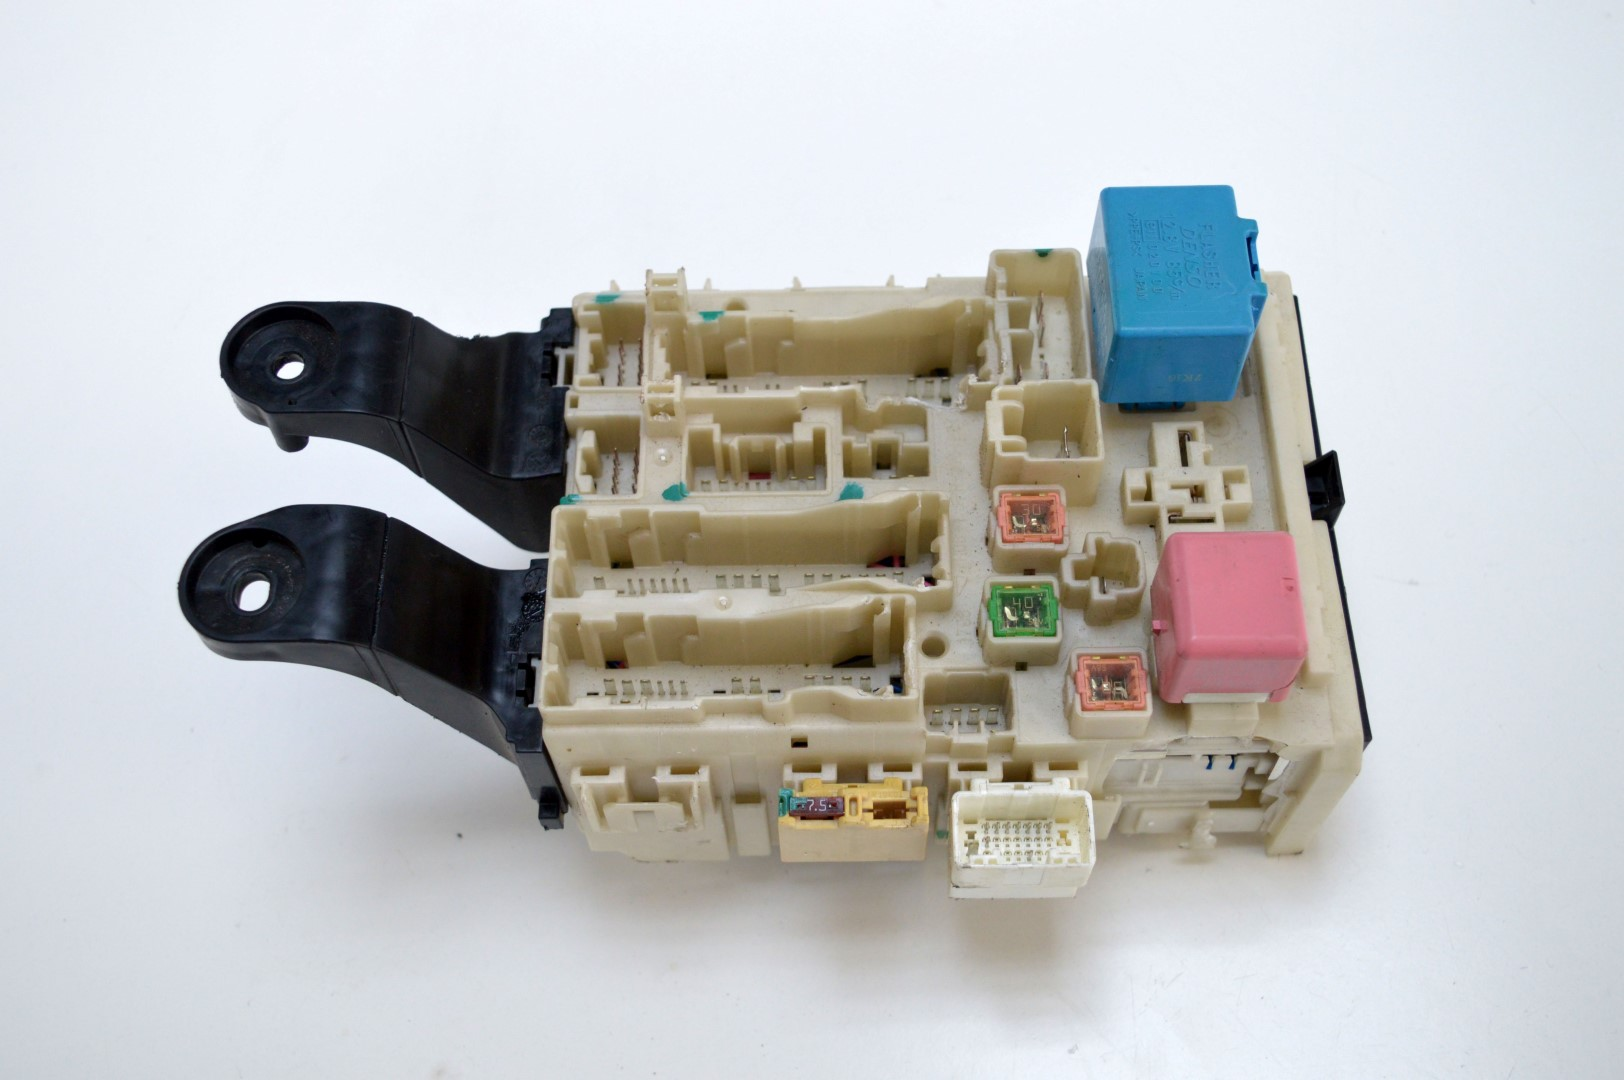 1802583 toyota avensis 2011 diesel fuse box 82730 05140 1541 8i17 ebay  at gsmx.co